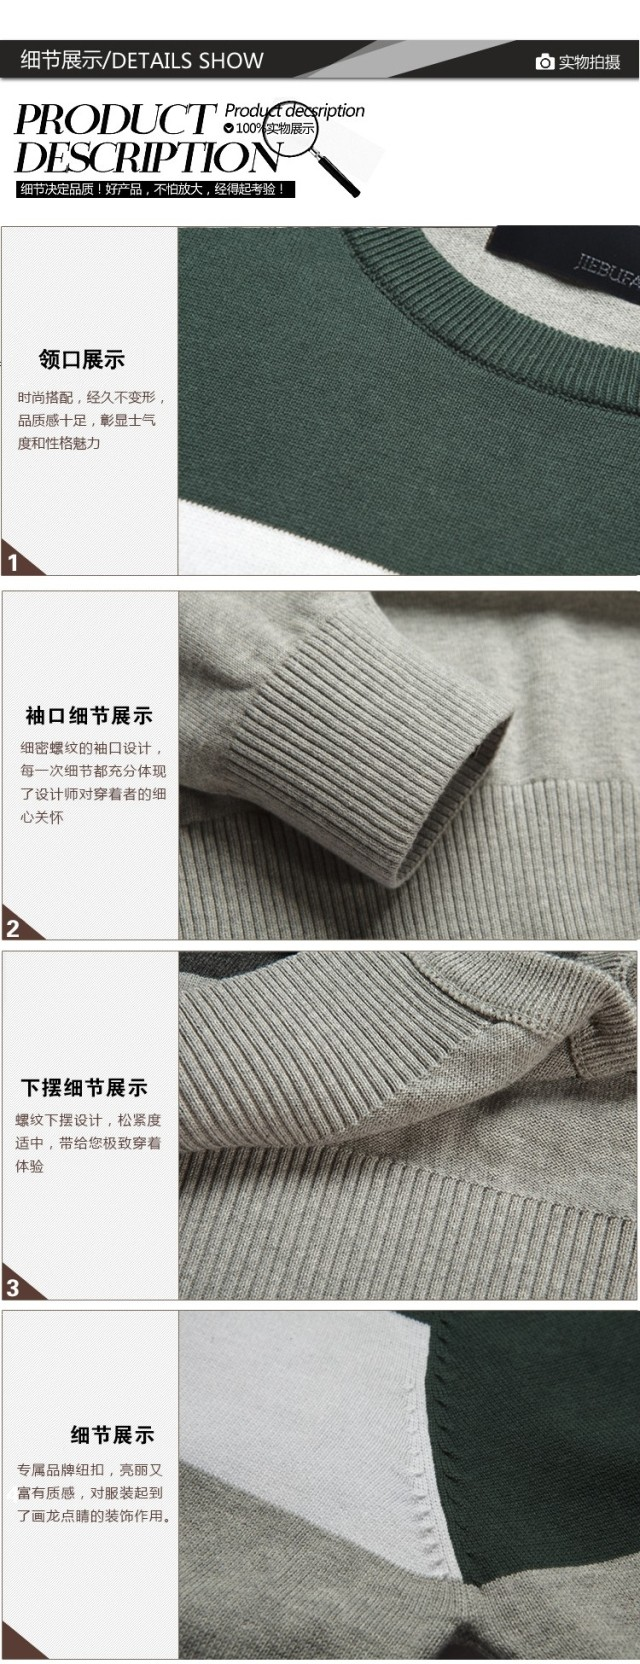 Jay packed sweaters in spring and autumn wave of men's round neck jumper sweater Cardigan men's sweater